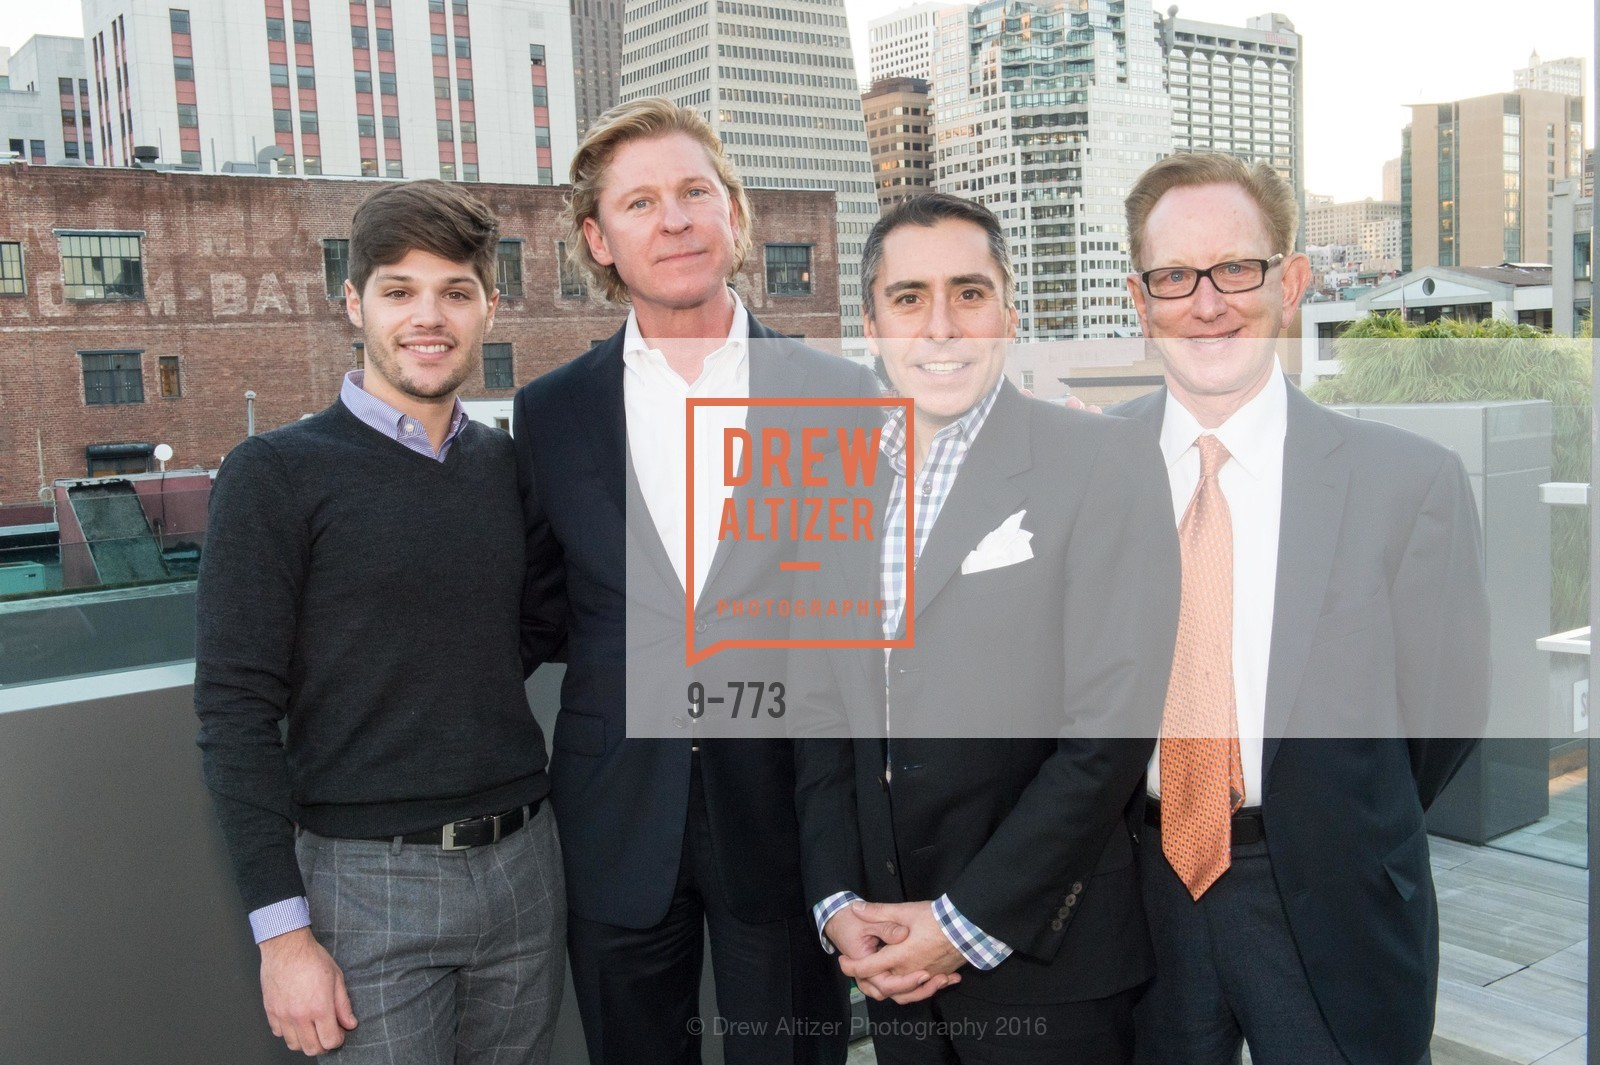 Jonathan Bentley, Jeffrey Wall, Paul Ybarbo, Richard Bastoni, Sotheby's International Realty's Celebrates the New Year, The Battery, Penthouse. 717 Battery St, January 27th, 2016,Drew Altizer, Drew Altizer Photography, full-service agency, private events, San Francisco photographer, photographer california